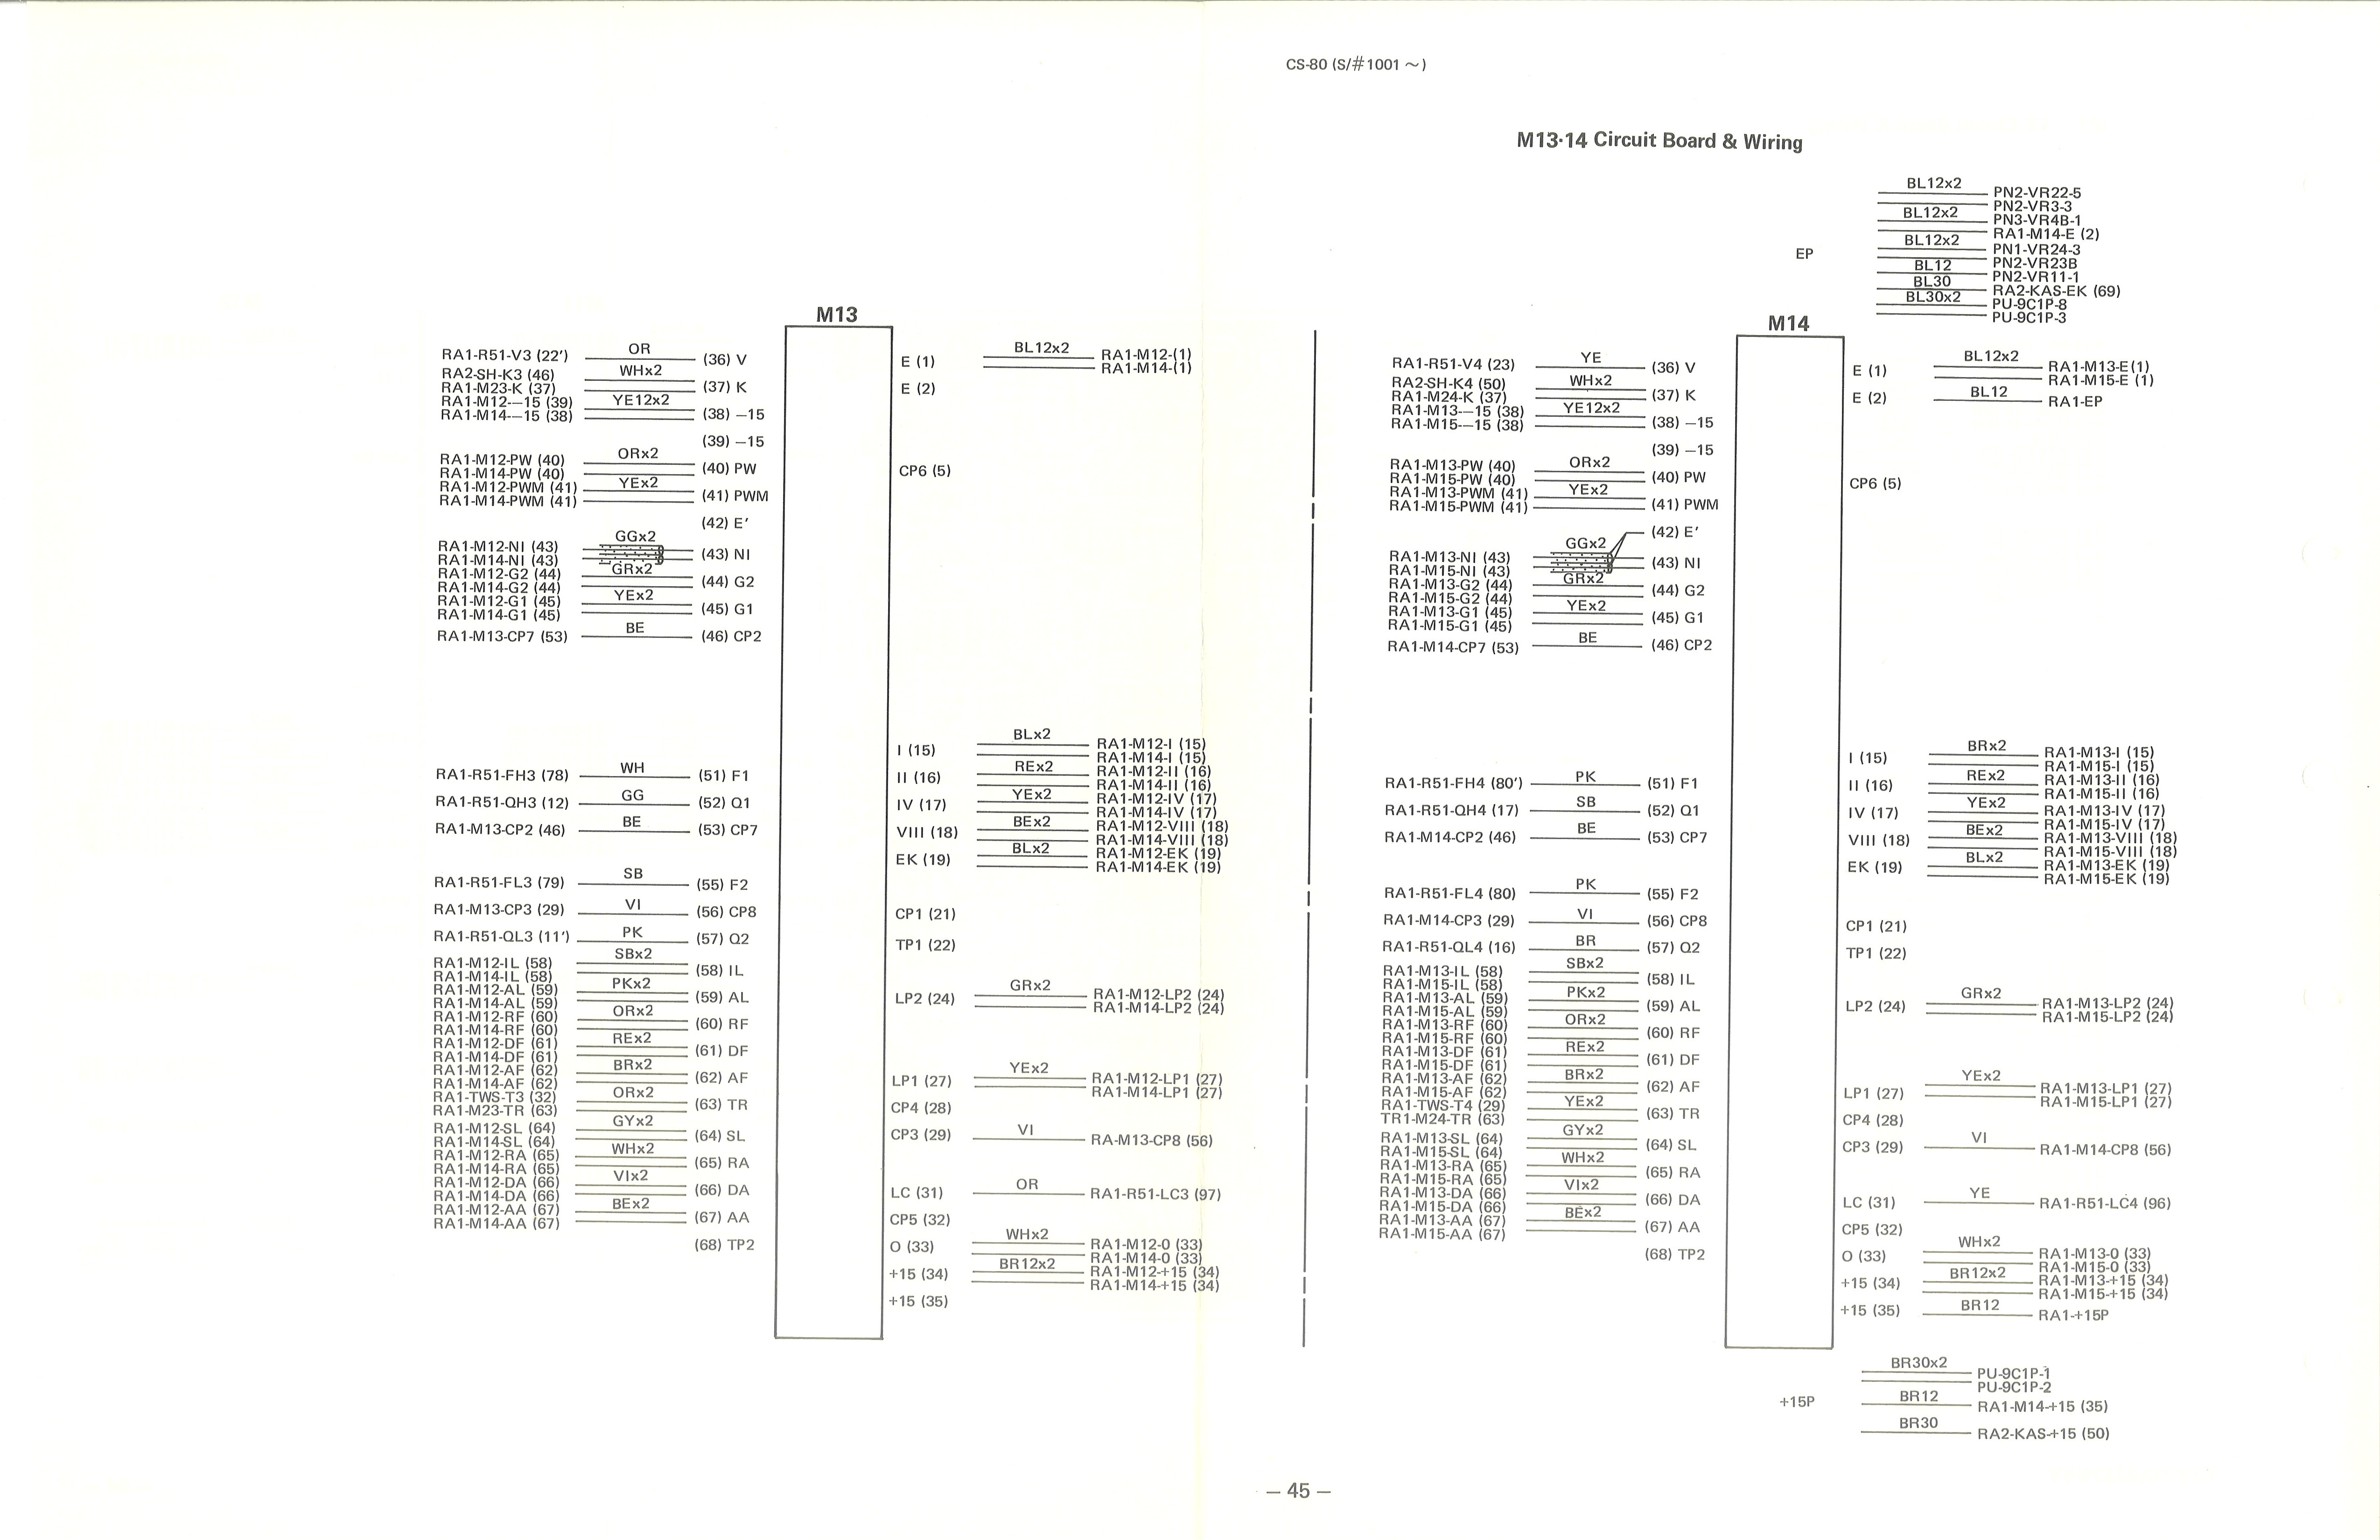 yamaha cs 80 service manual 45 m13 14 circuit board wiring